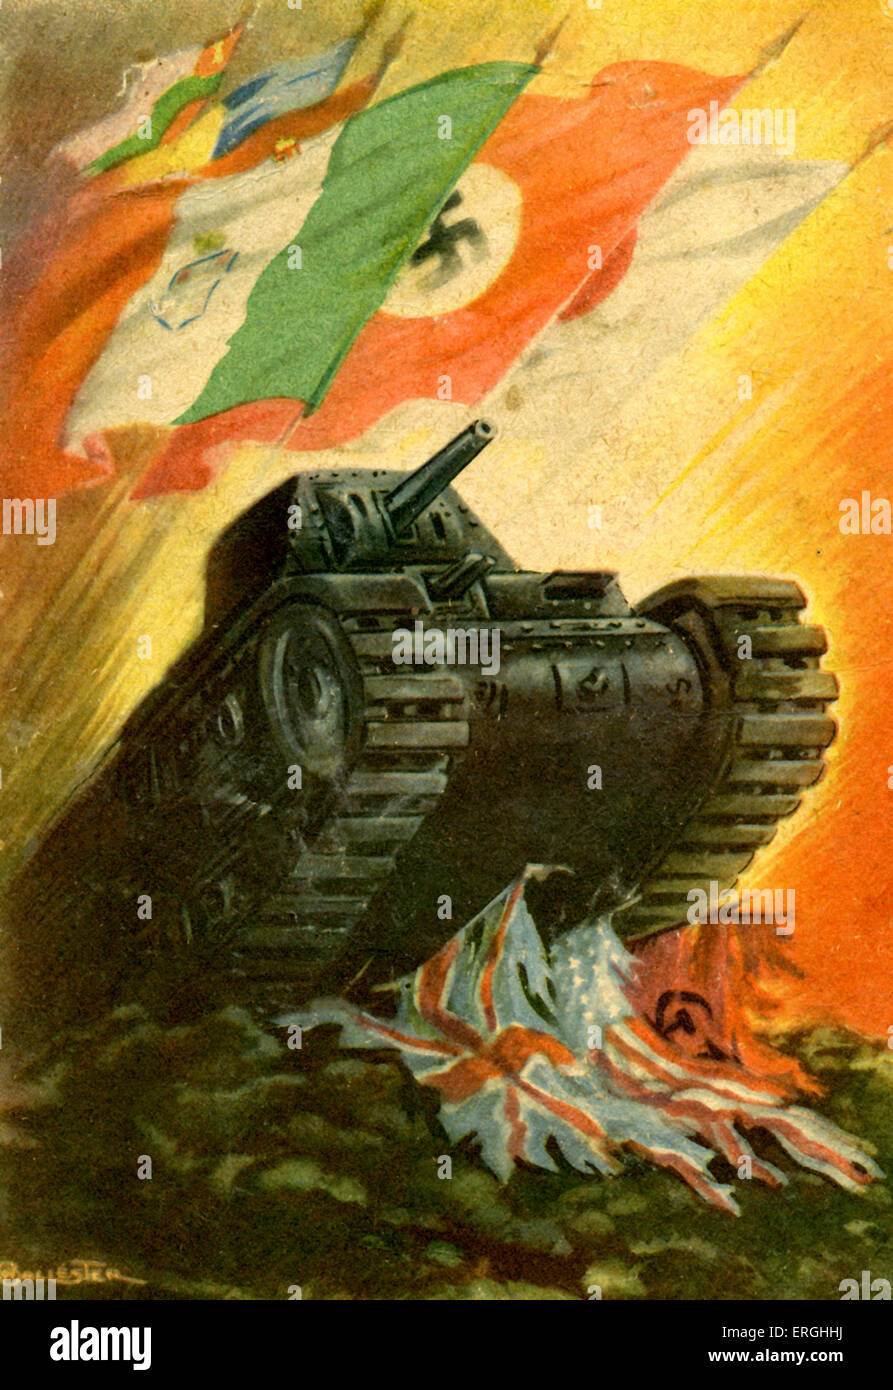 World War 2: Tank crushing Allies ' flags  Flag carrying flags of